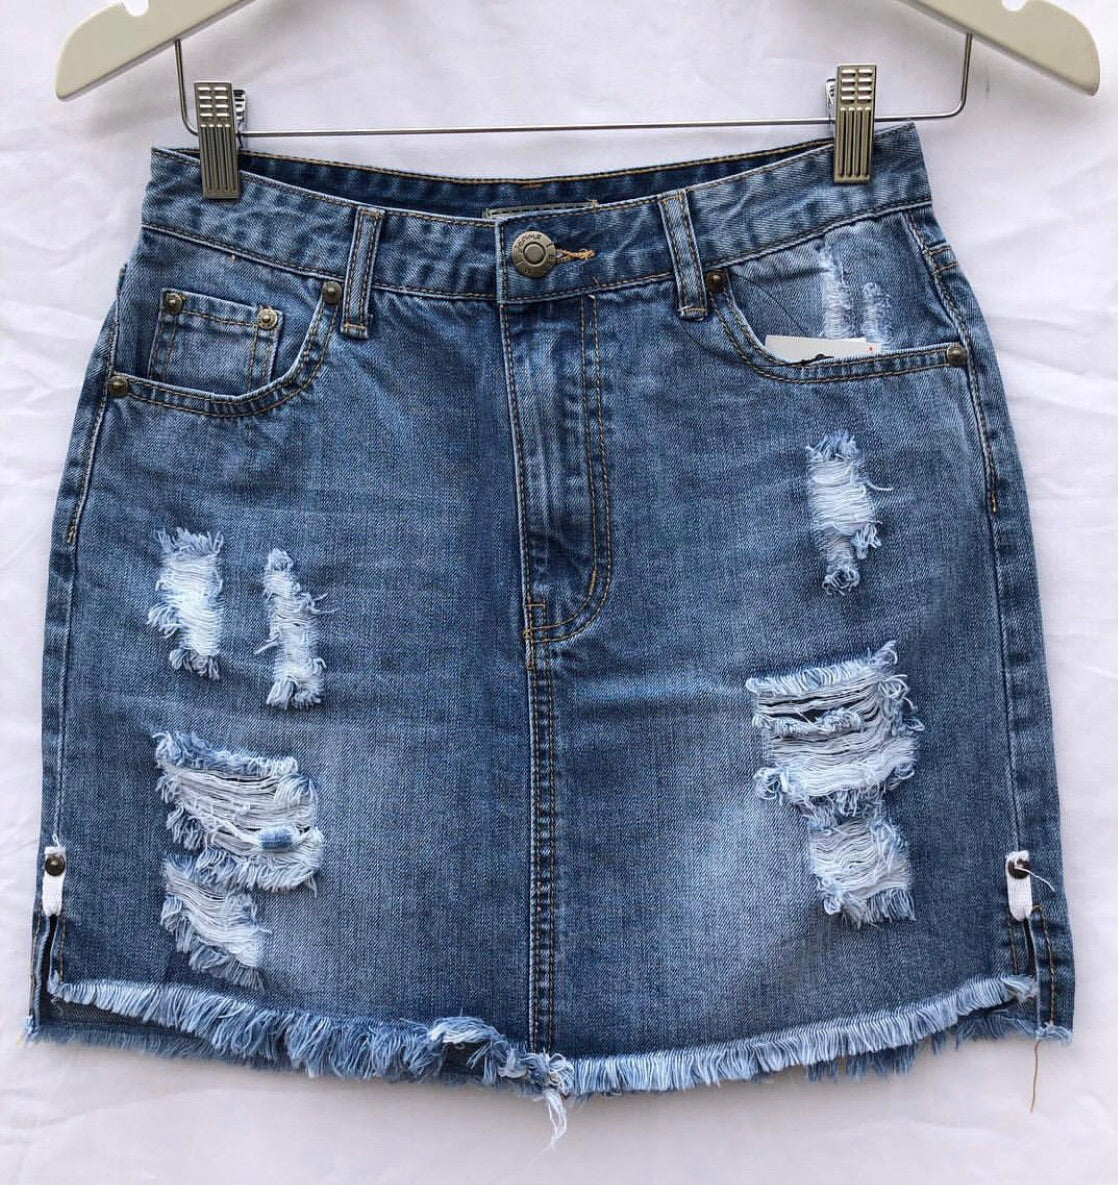 wakee denim ripped skirt